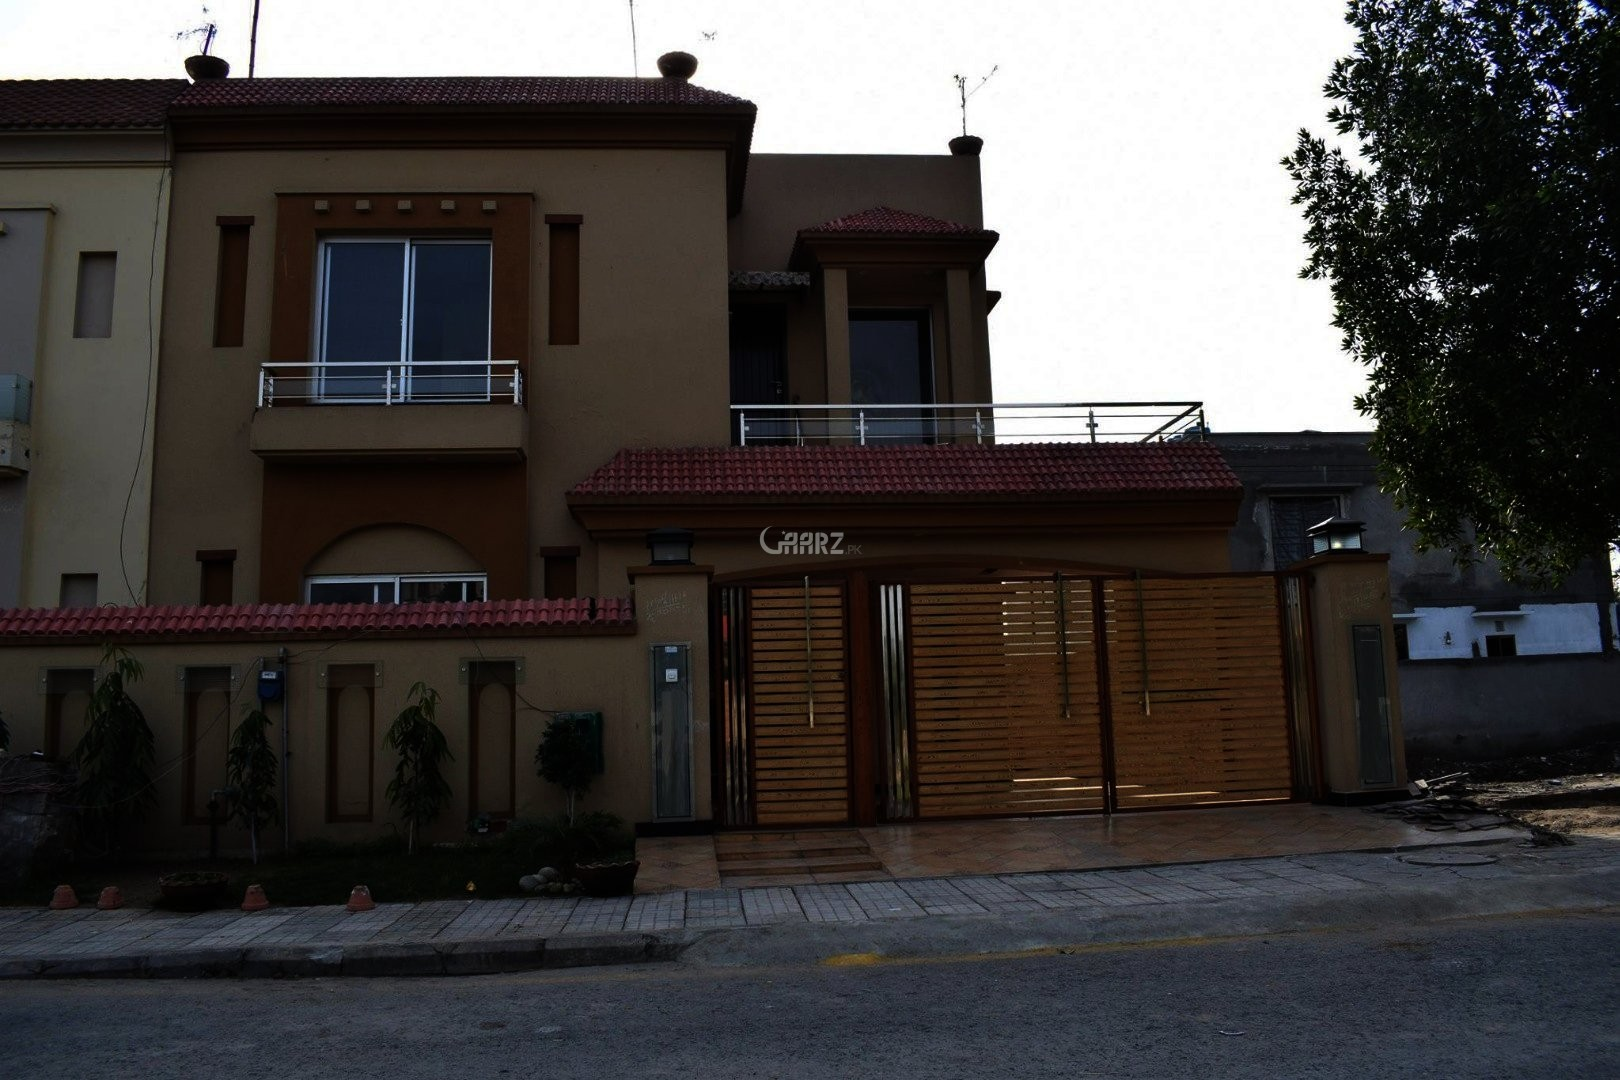 1 Kanal Bungalow For Sale In Eden City, Lahore